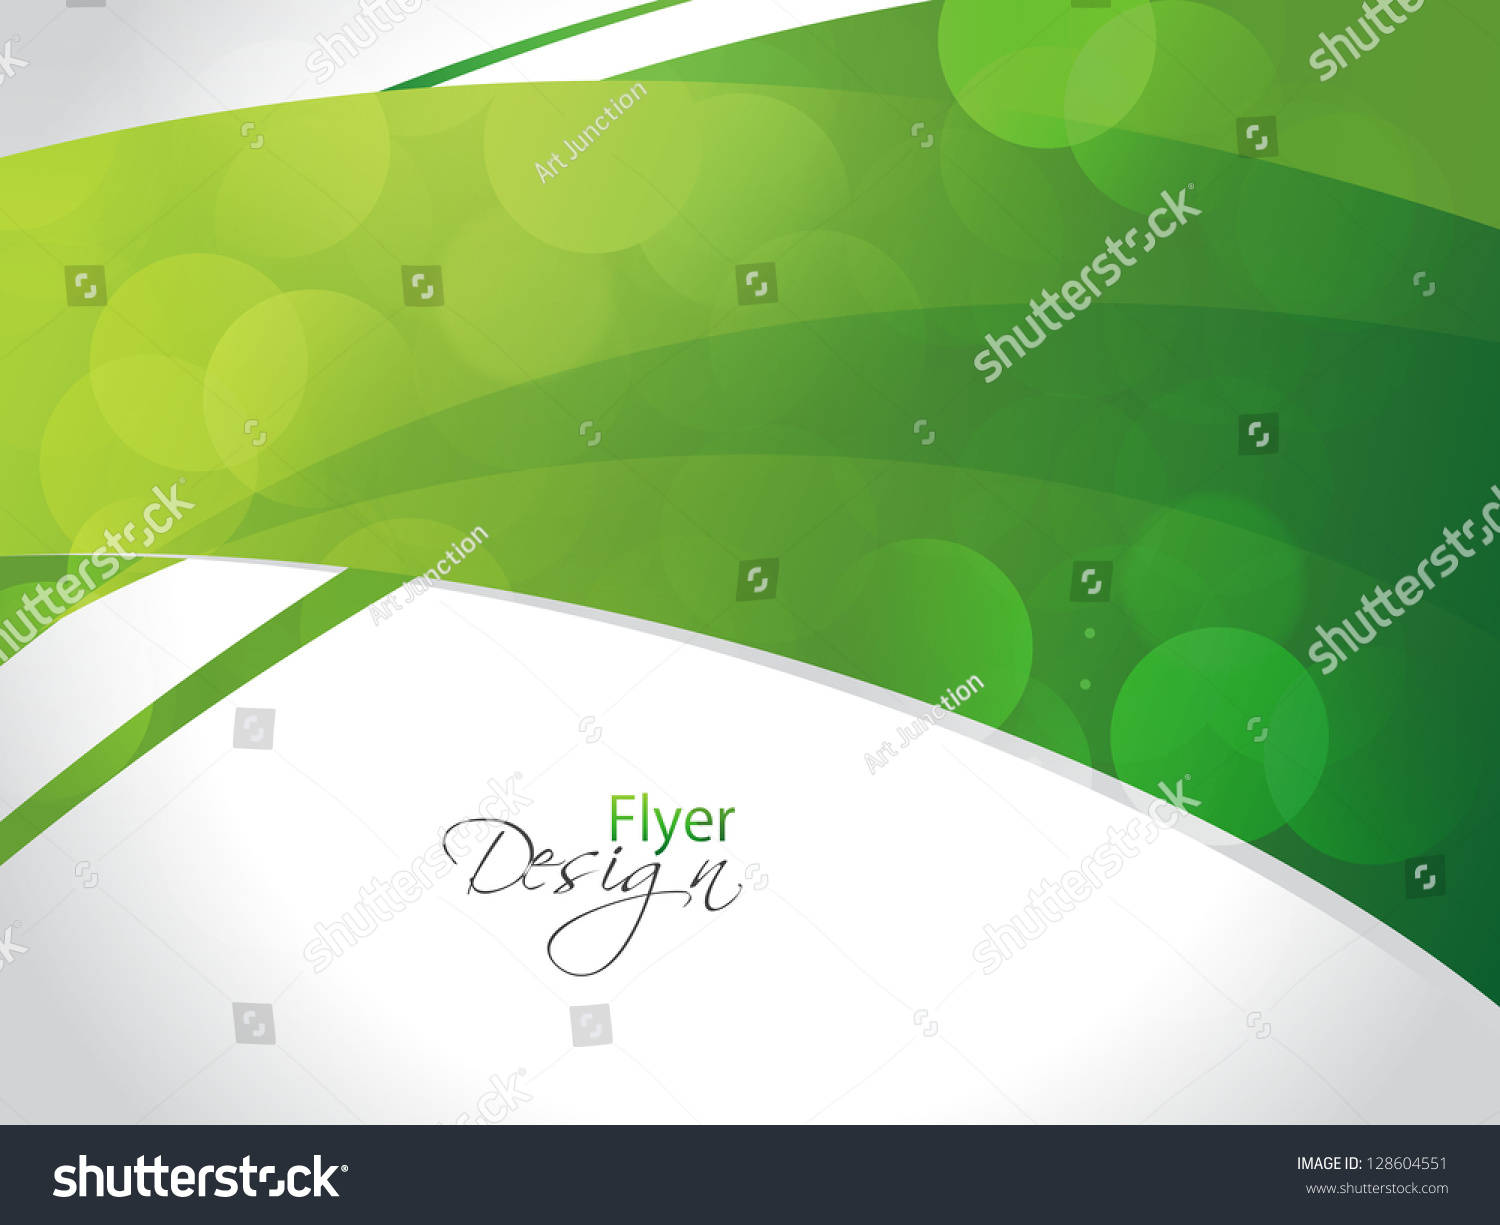 beautiful abstract flyer design cover page stock vector  beautiful abstract flyer design cover page design eps 10